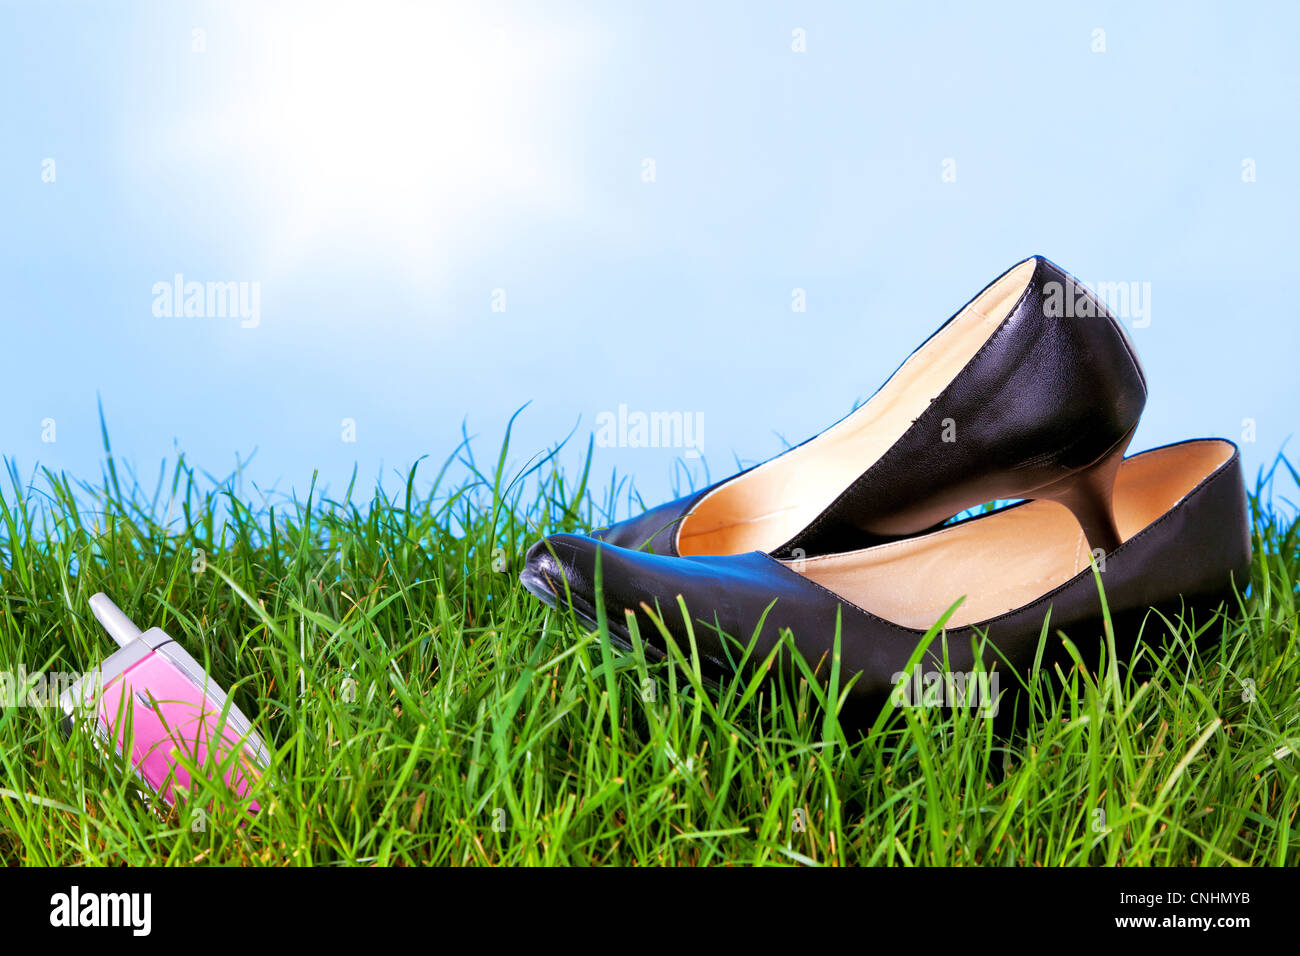 Photo of womens high heel shoes and a mobile phone on grass against a bright blue sky with sunshine. - Stock Image